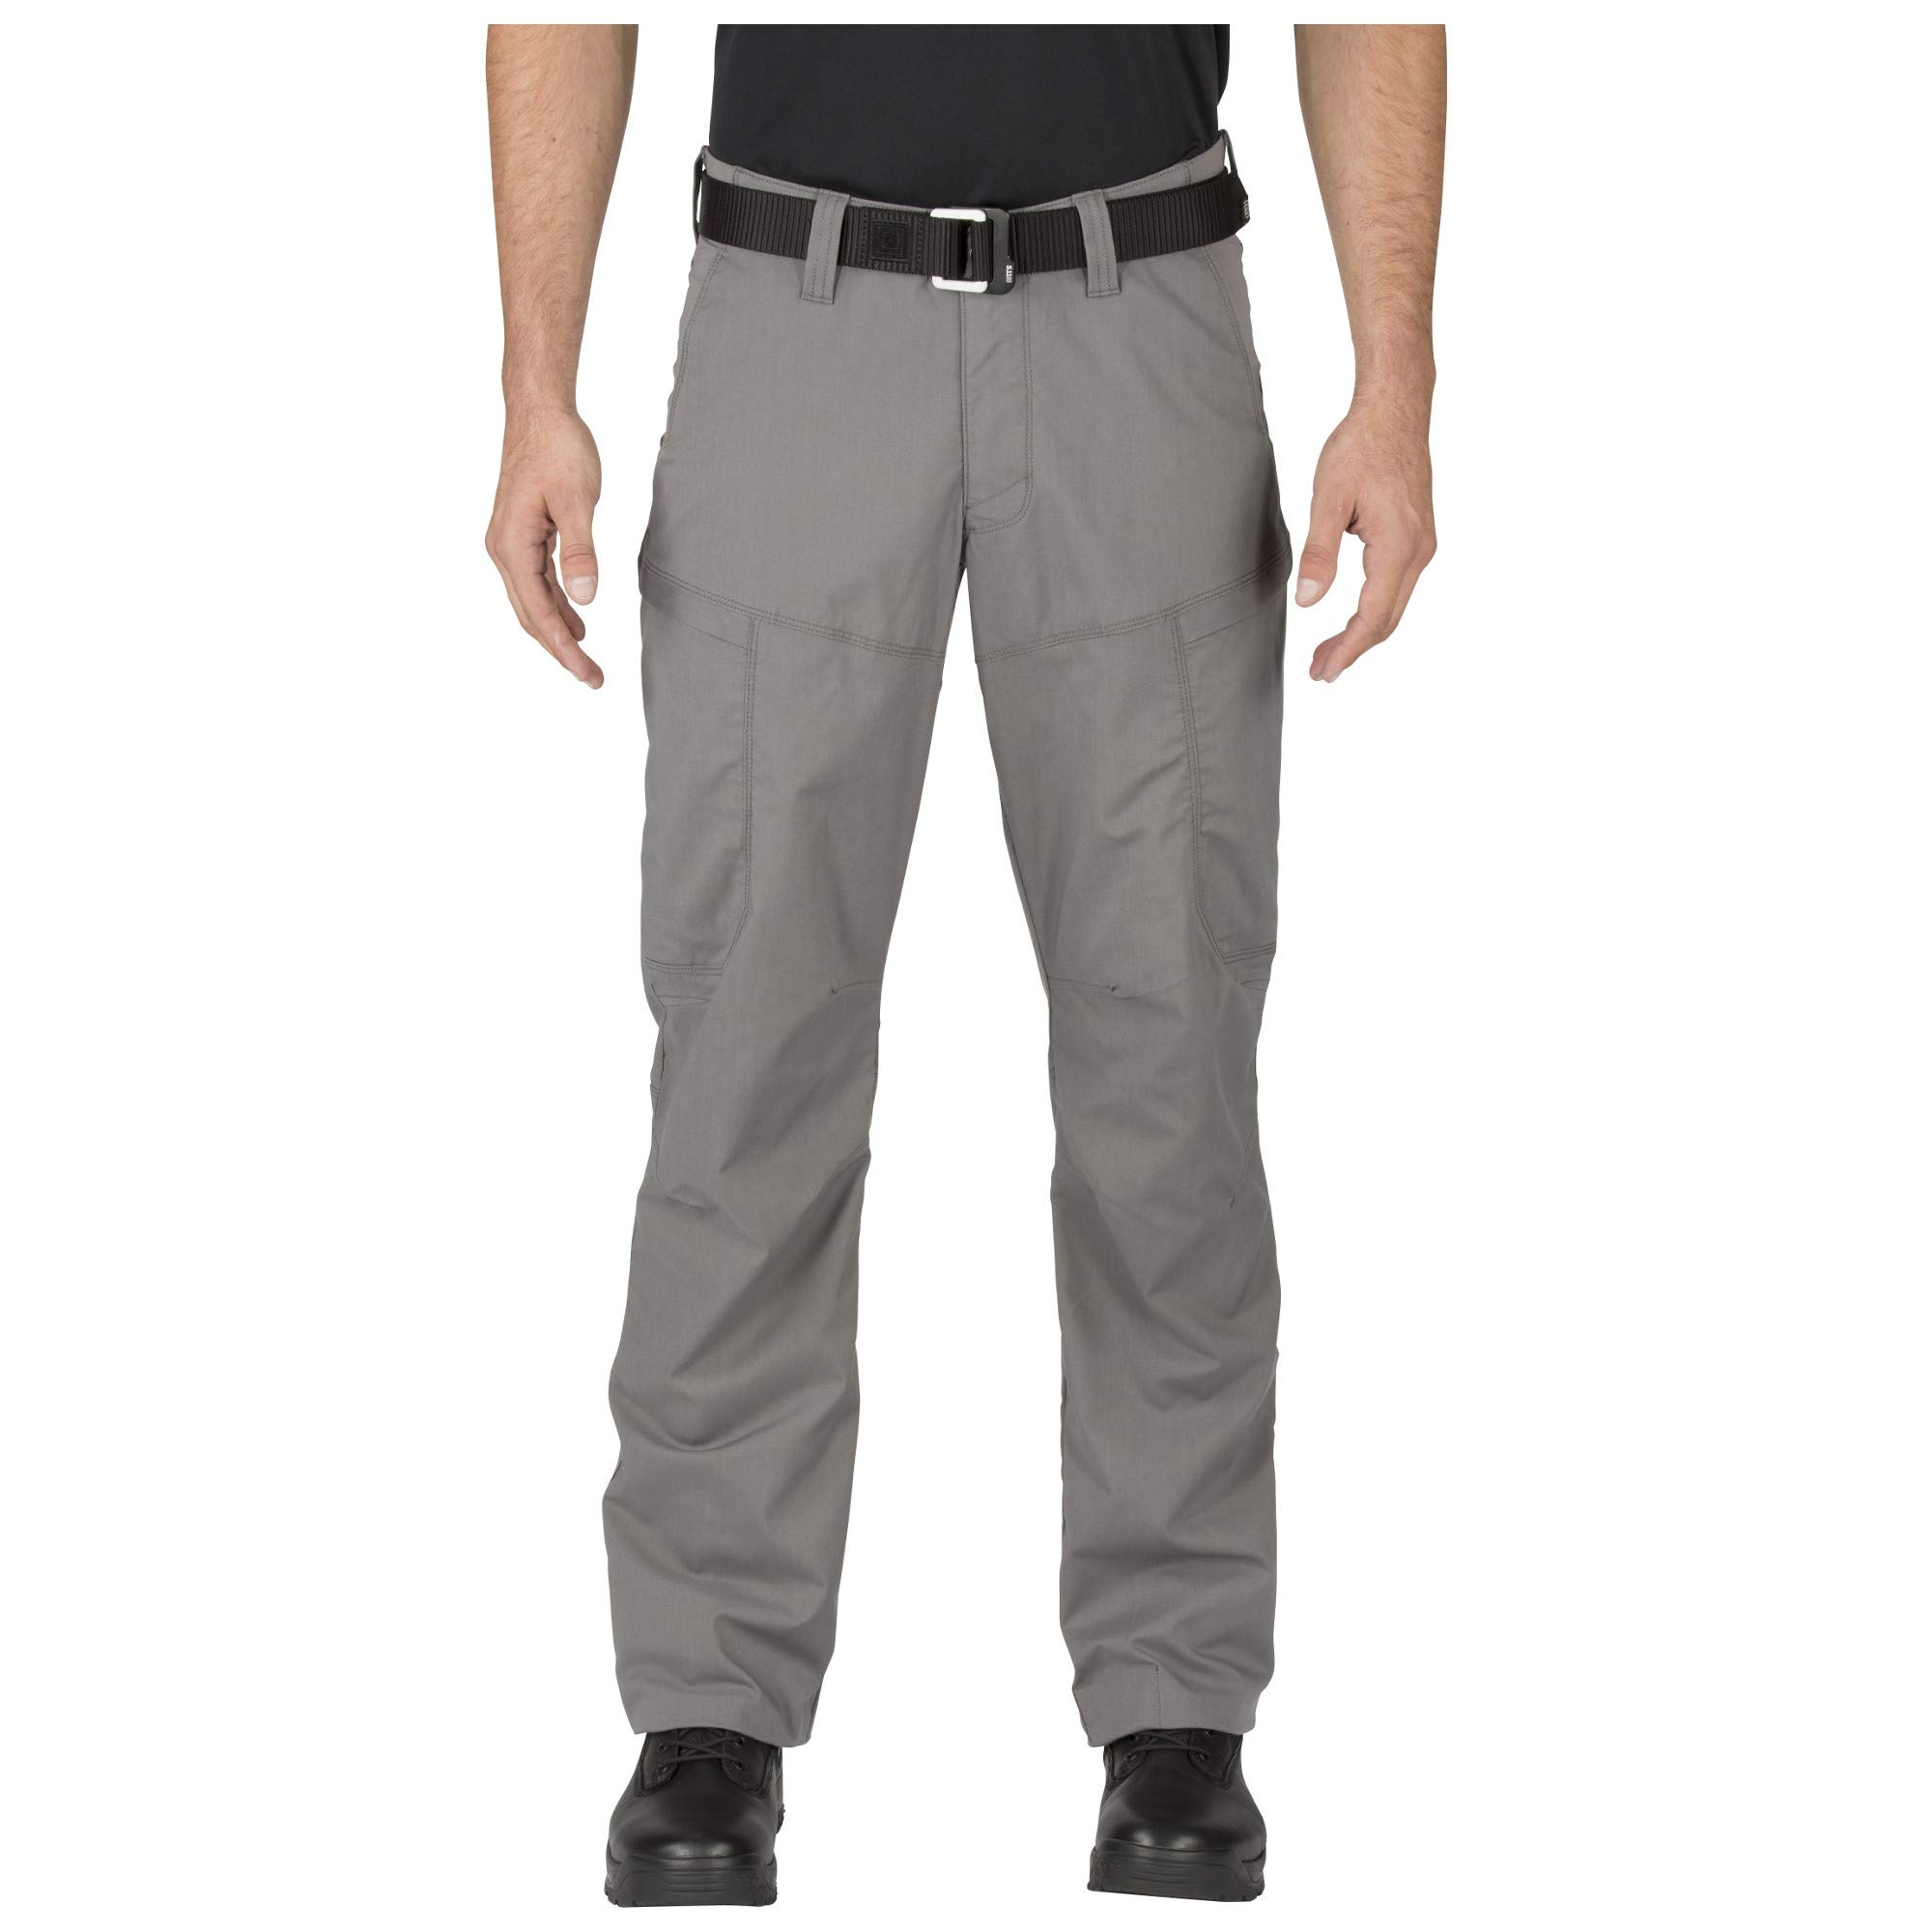 5.11 Men's APEX EDC Stealth Cargo Pocket Tactical Pant Style 74434, Storm, 35W x 32L by 5.11